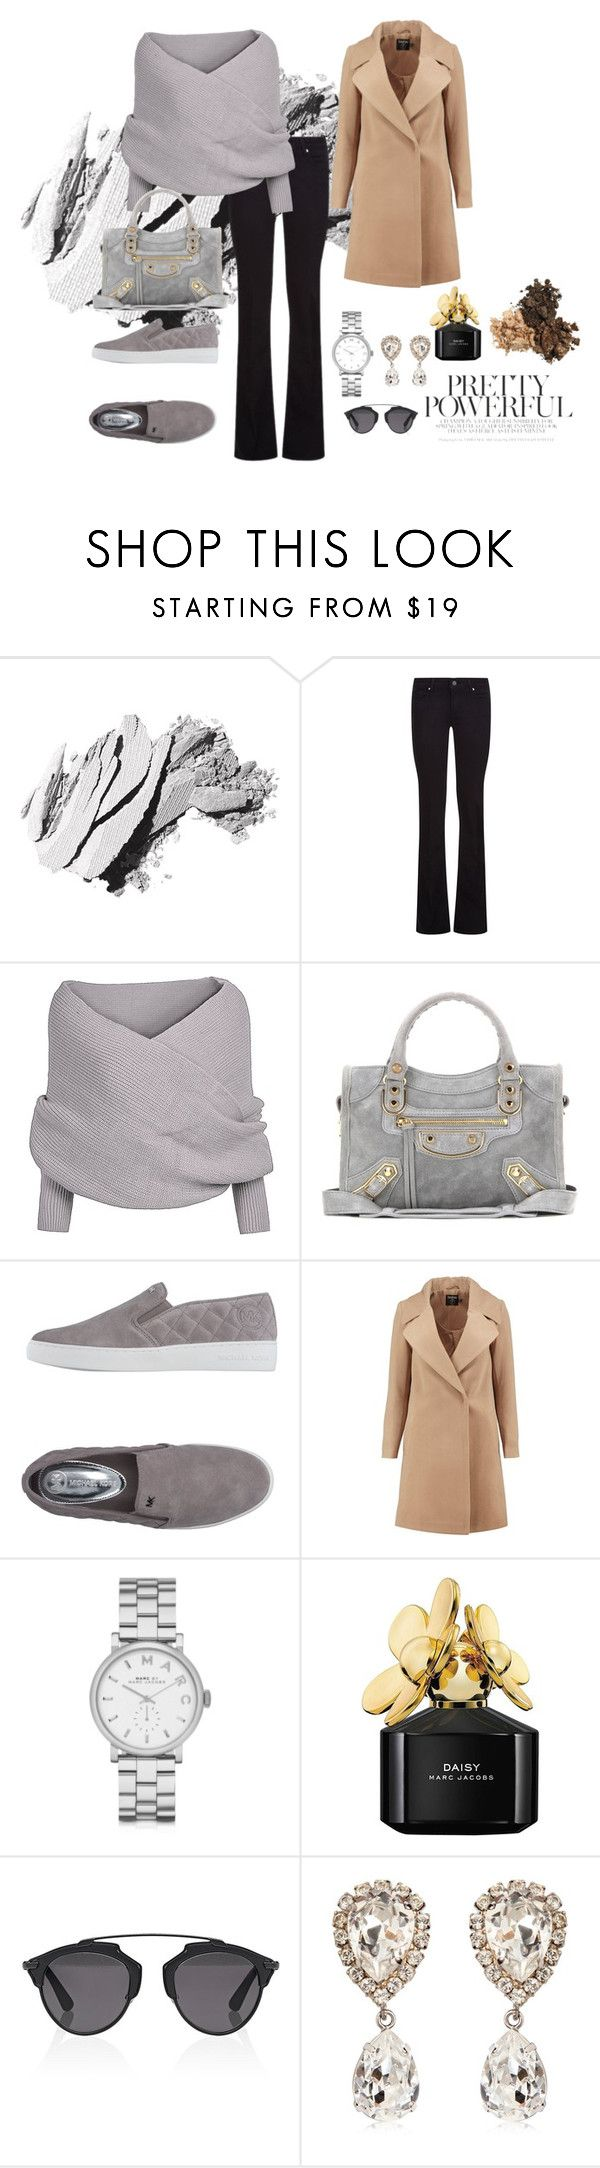 """""""WINTER"""" by yasmingarcia99 on Polyvore featuring Bobbi Brown Cosmetics, Paige Denim, Balenciaga, MICHAEL Michael Kors, Boohoo, Marc by Marc Jacobs, Marc Jacobs, Christian Dior and Dolce&Gabbana"""